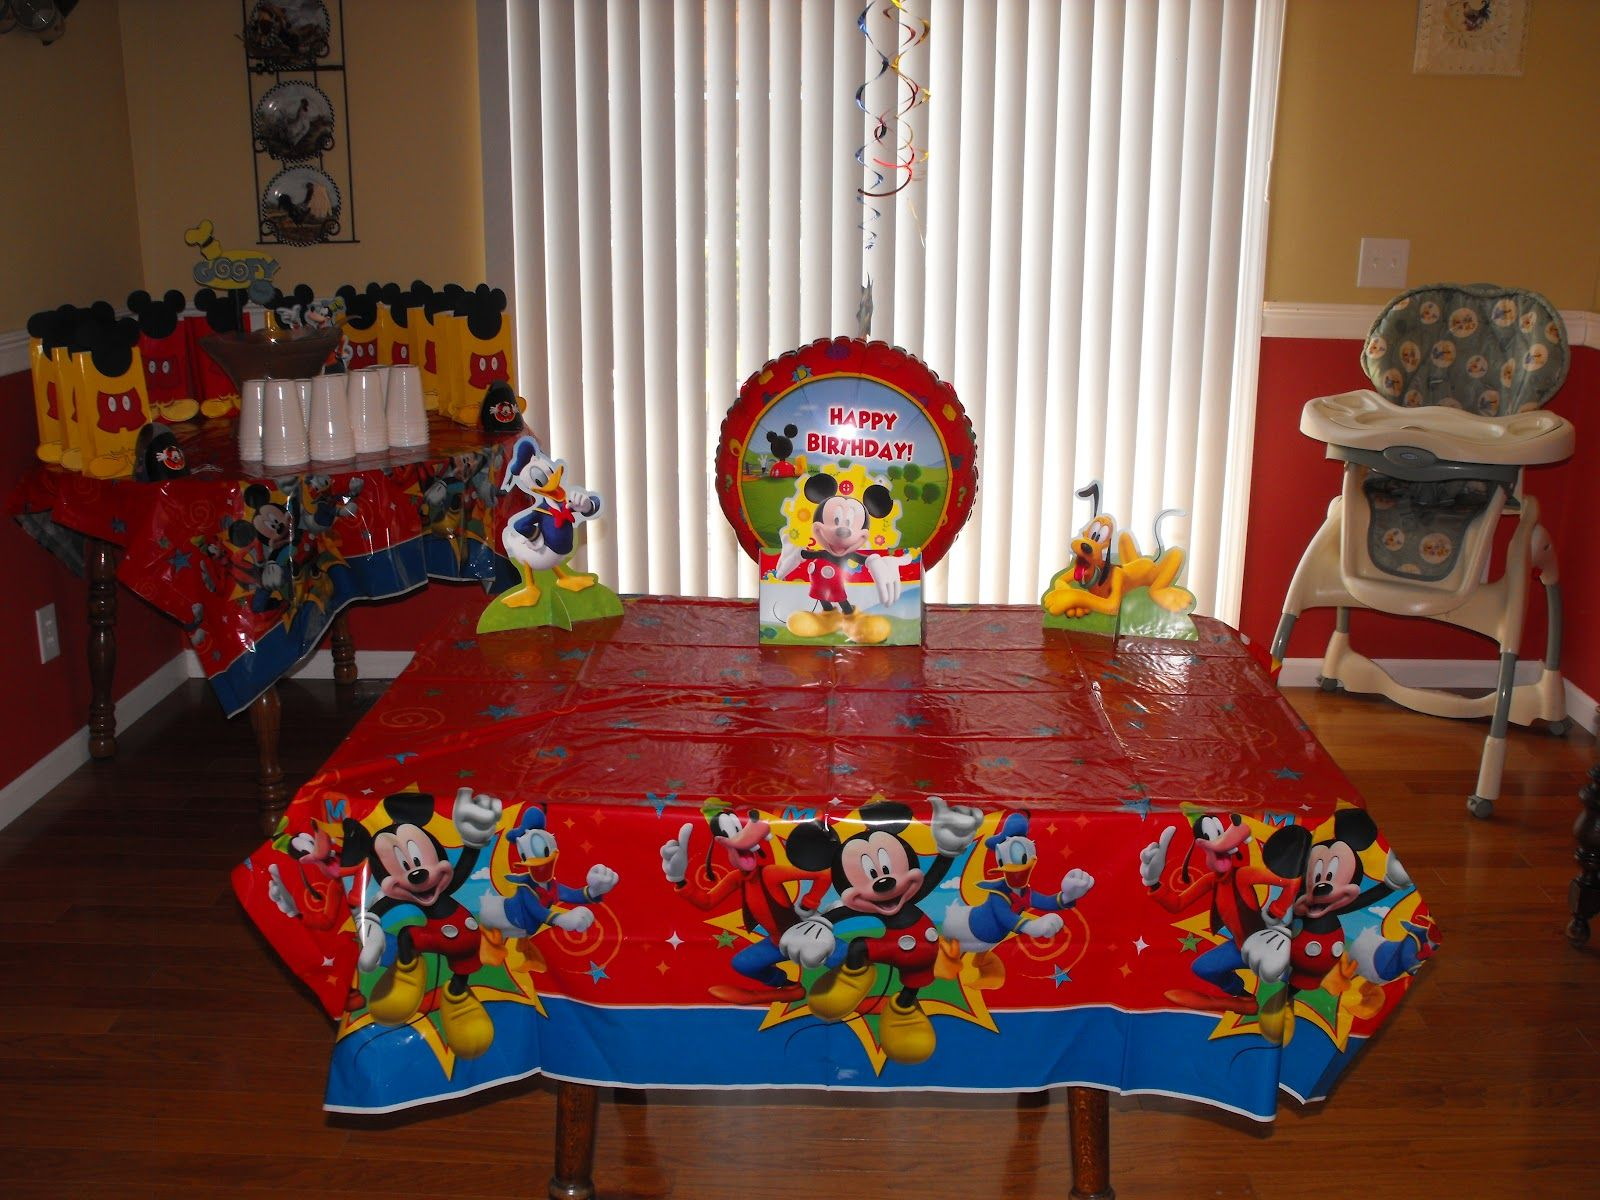 Mickey Mouse Clubhouse Party Ideas Homemade intentionsof using